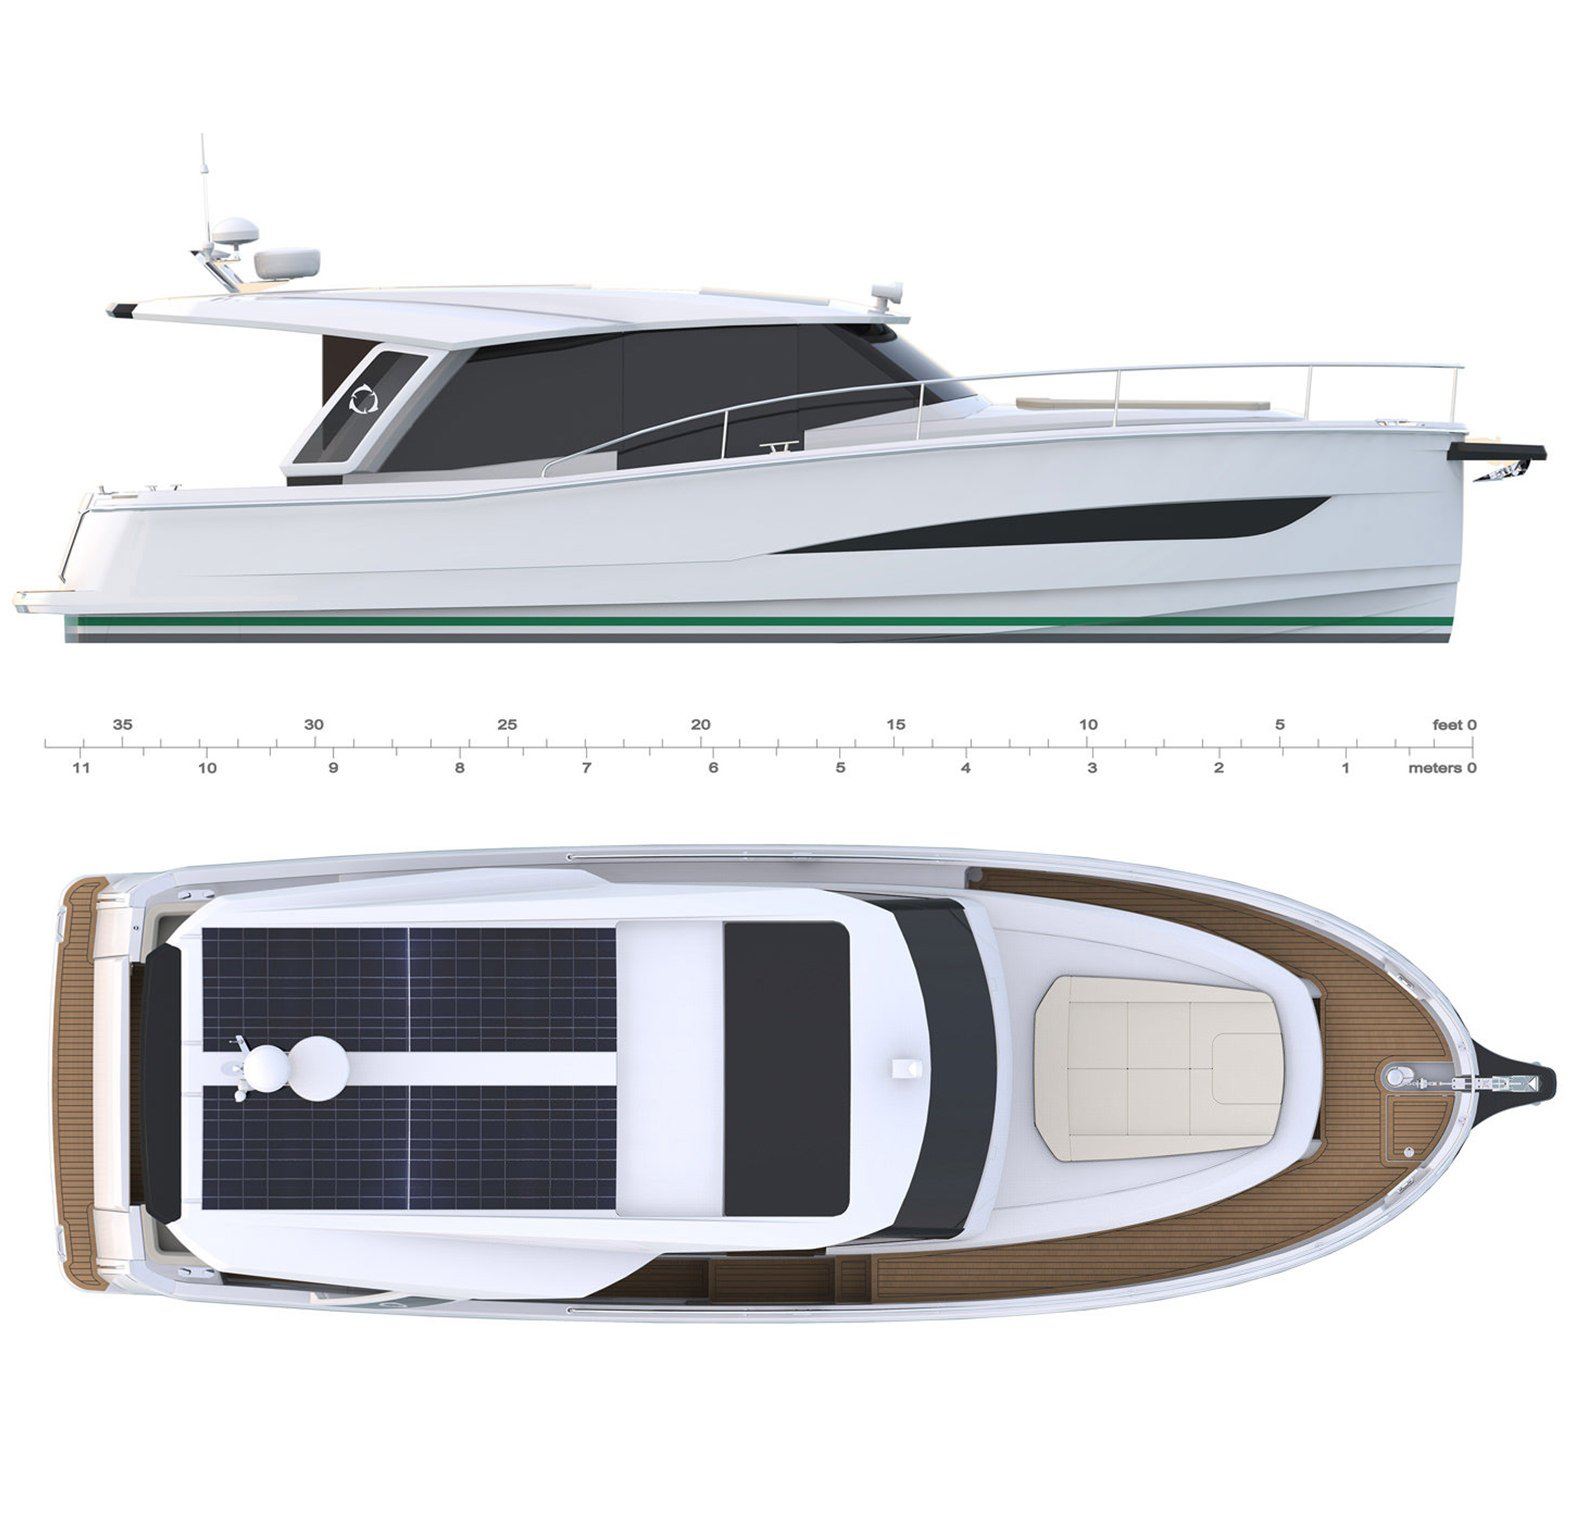 A Modern Fast Motor Cruiser. Here you see a graph showing the Greenline 39 twice. One full-length side view and one full-length bird's-eye view.